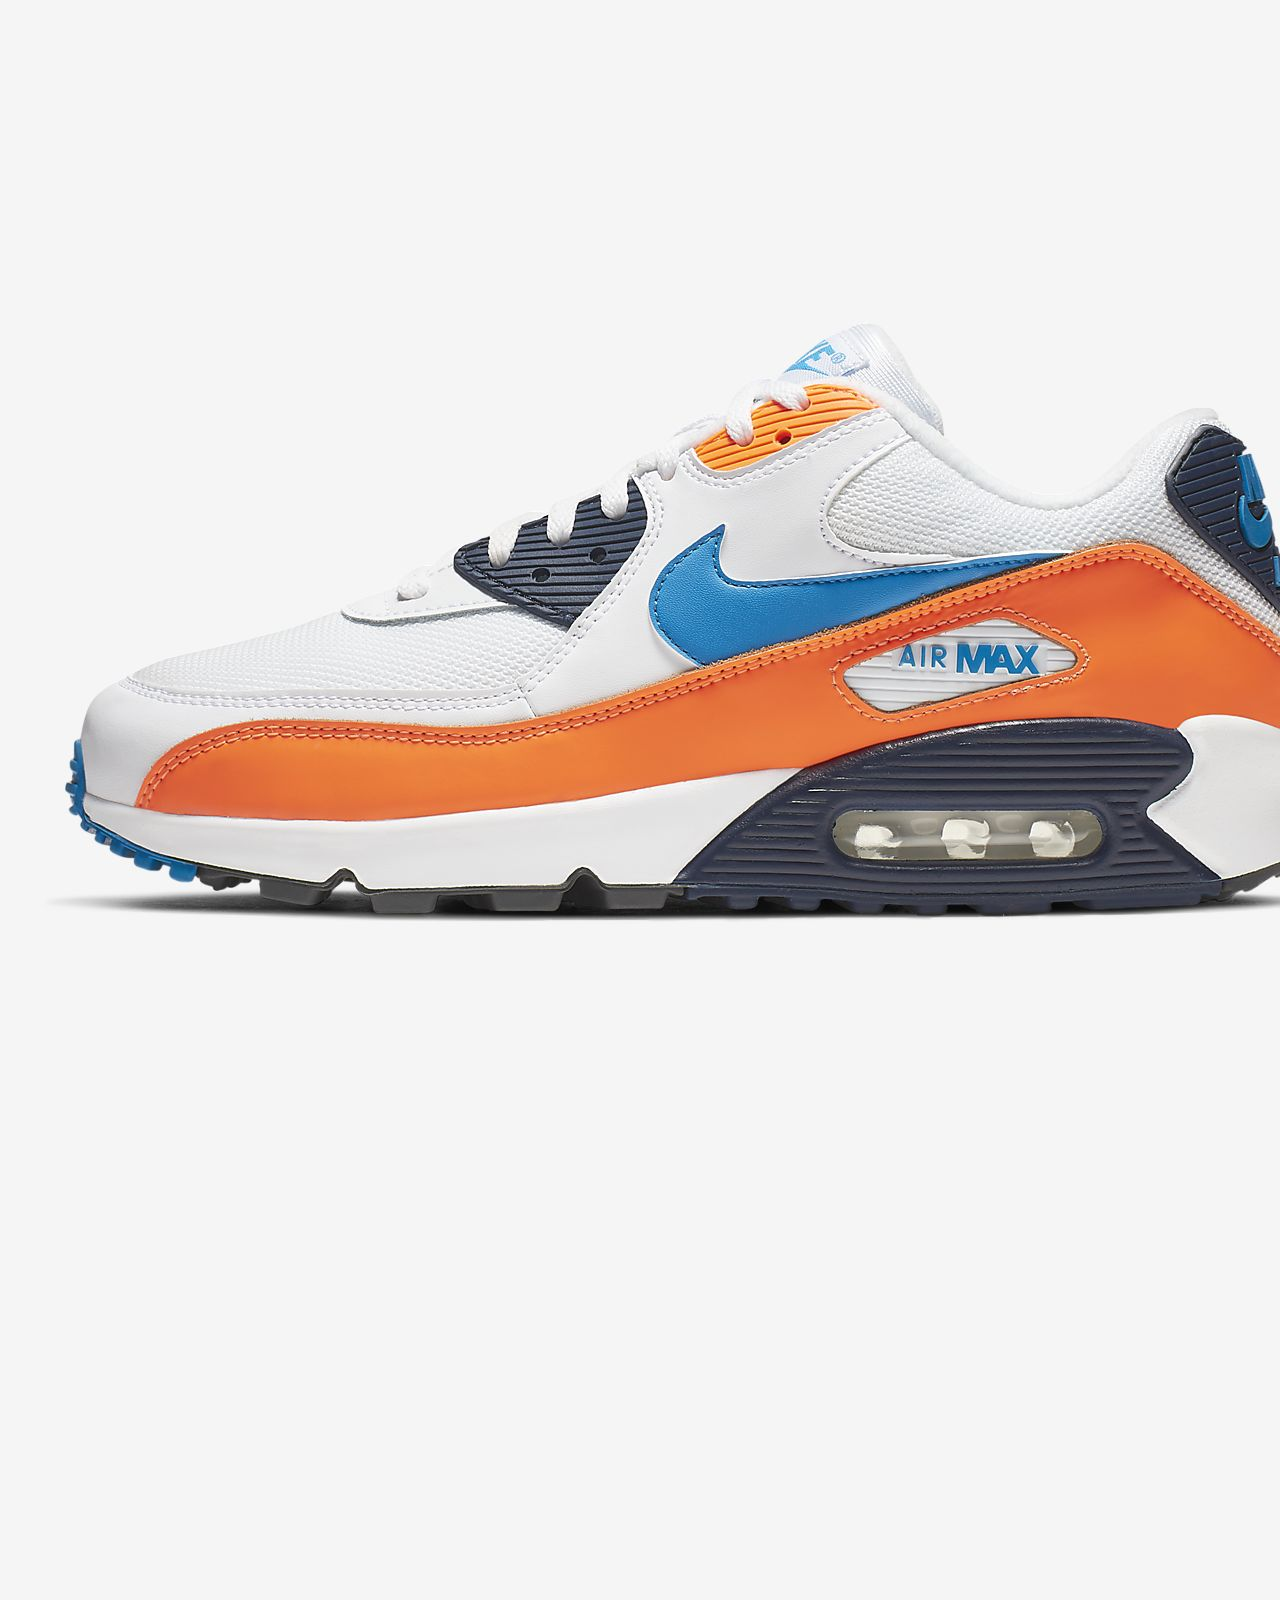 separation shoes ee966 b5f55 ... Nike Air Max 90 Essential Men s Shoe